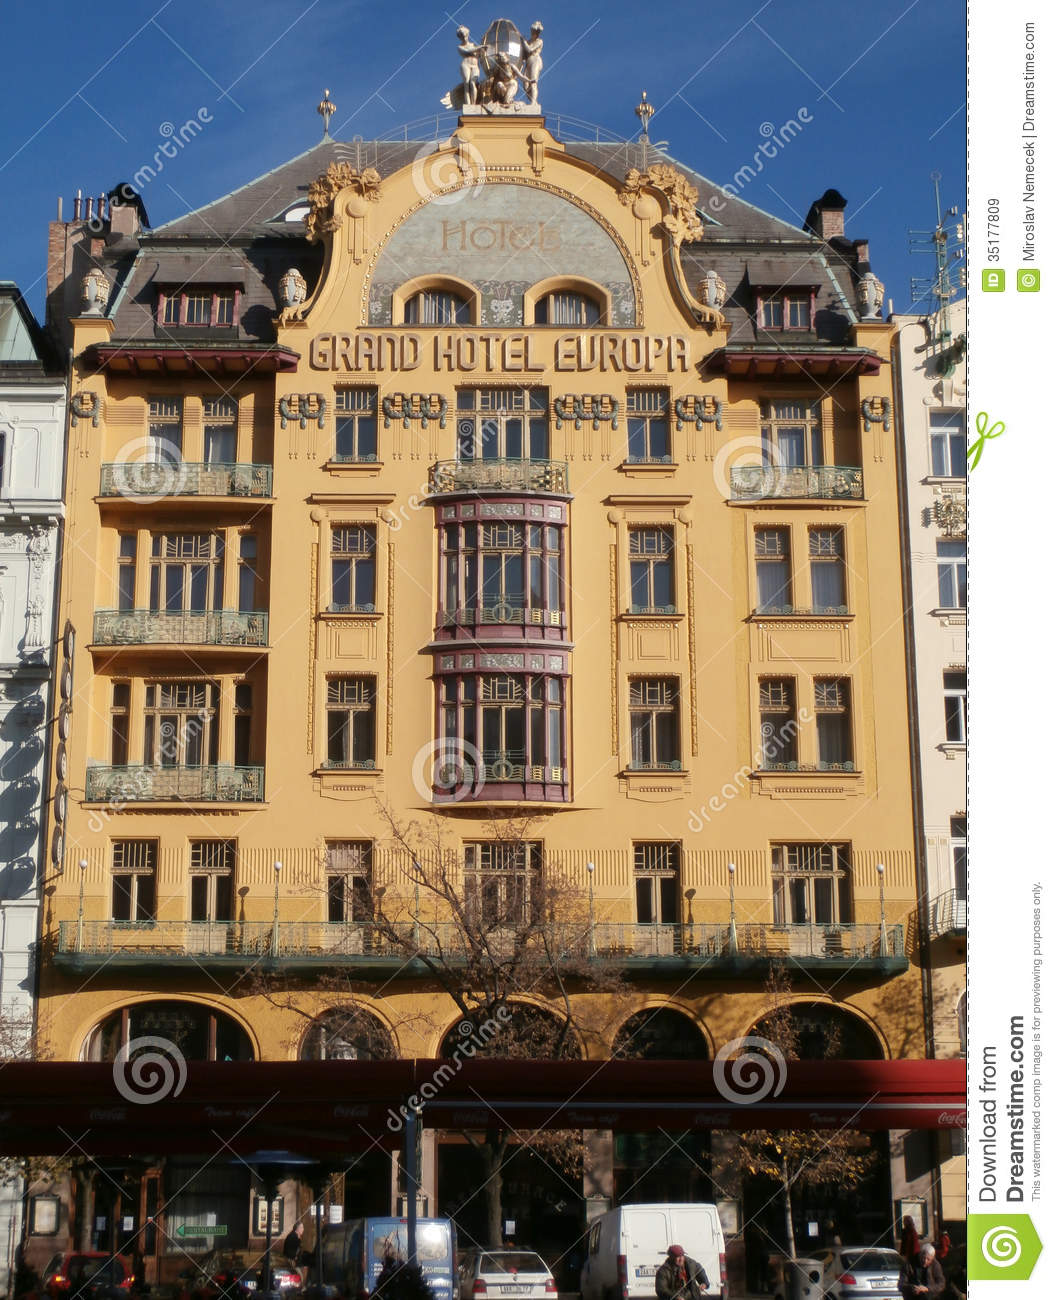 Grand hotel europe in prague editorial stock image image for Hotel europa prague